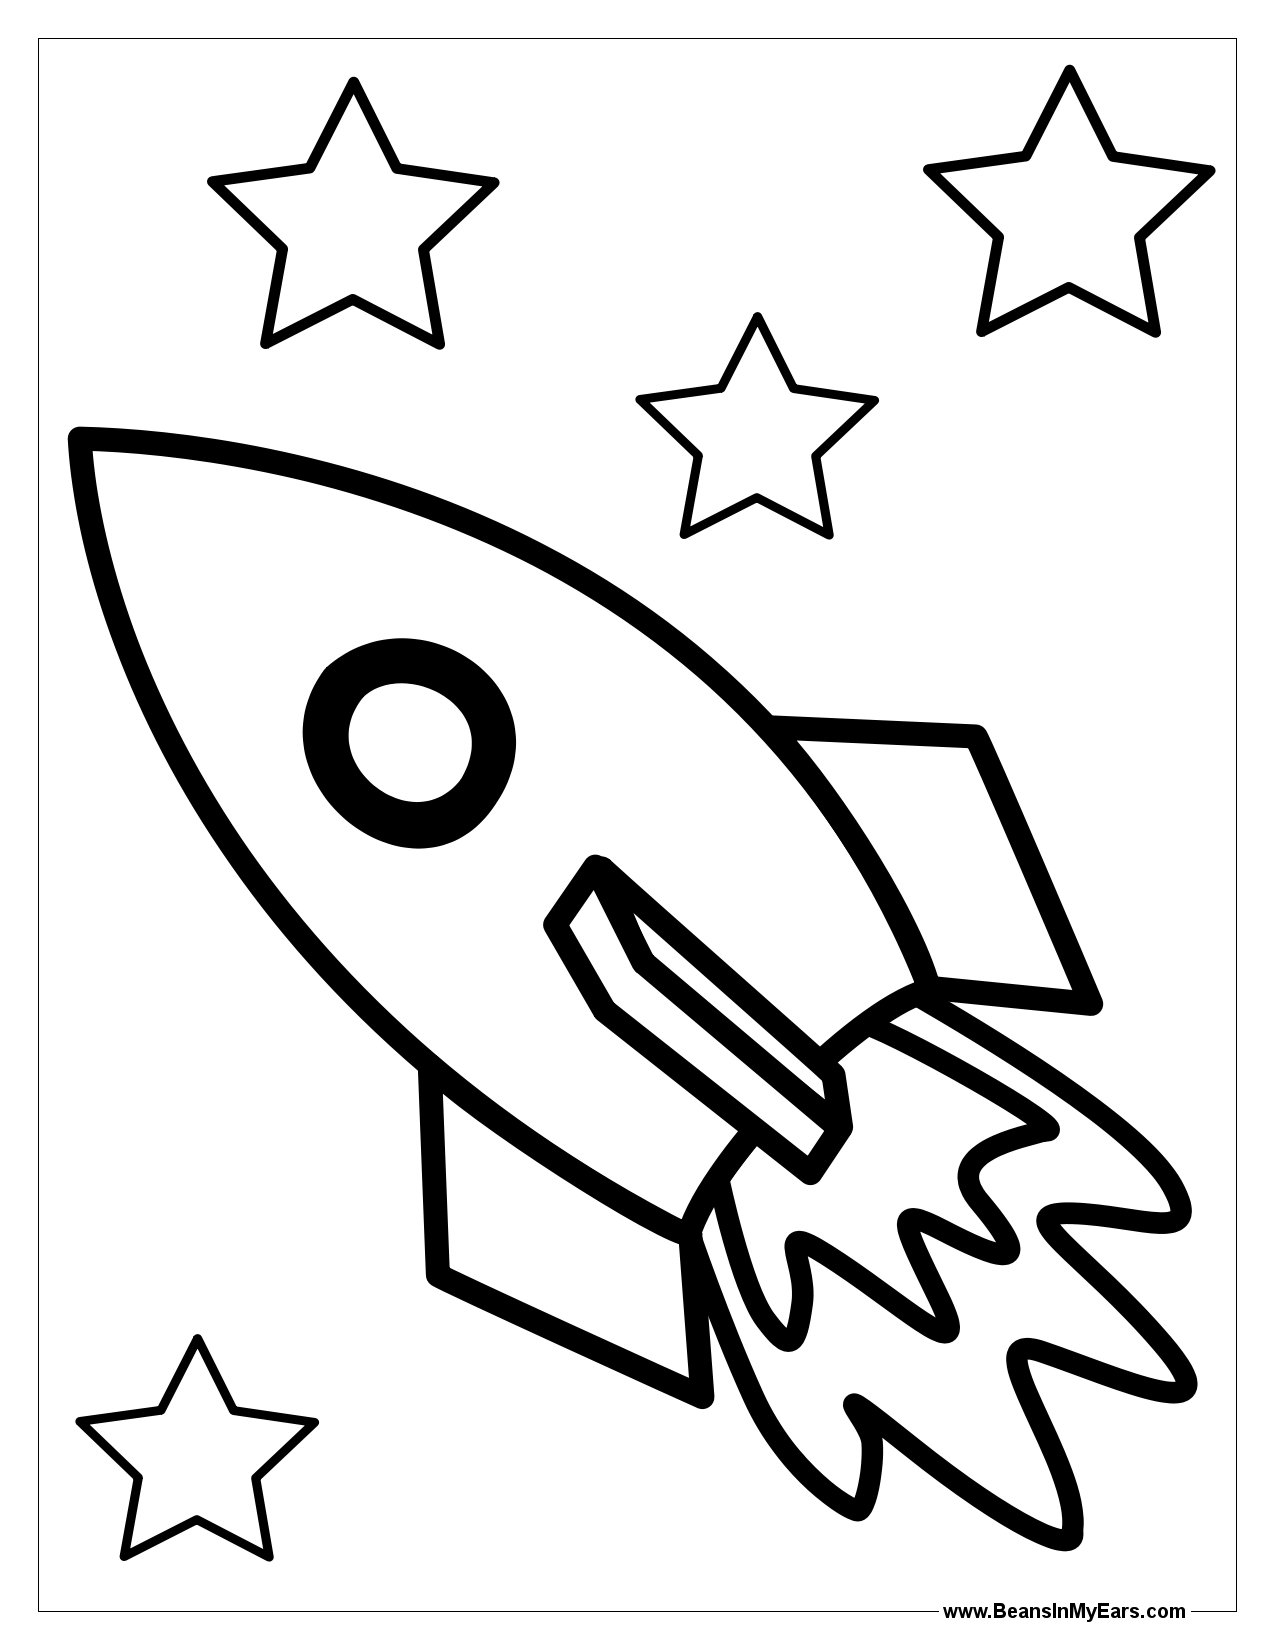 rocket ship coloring page rocket ship pictures for kids clipartsco ship rocket page coloring